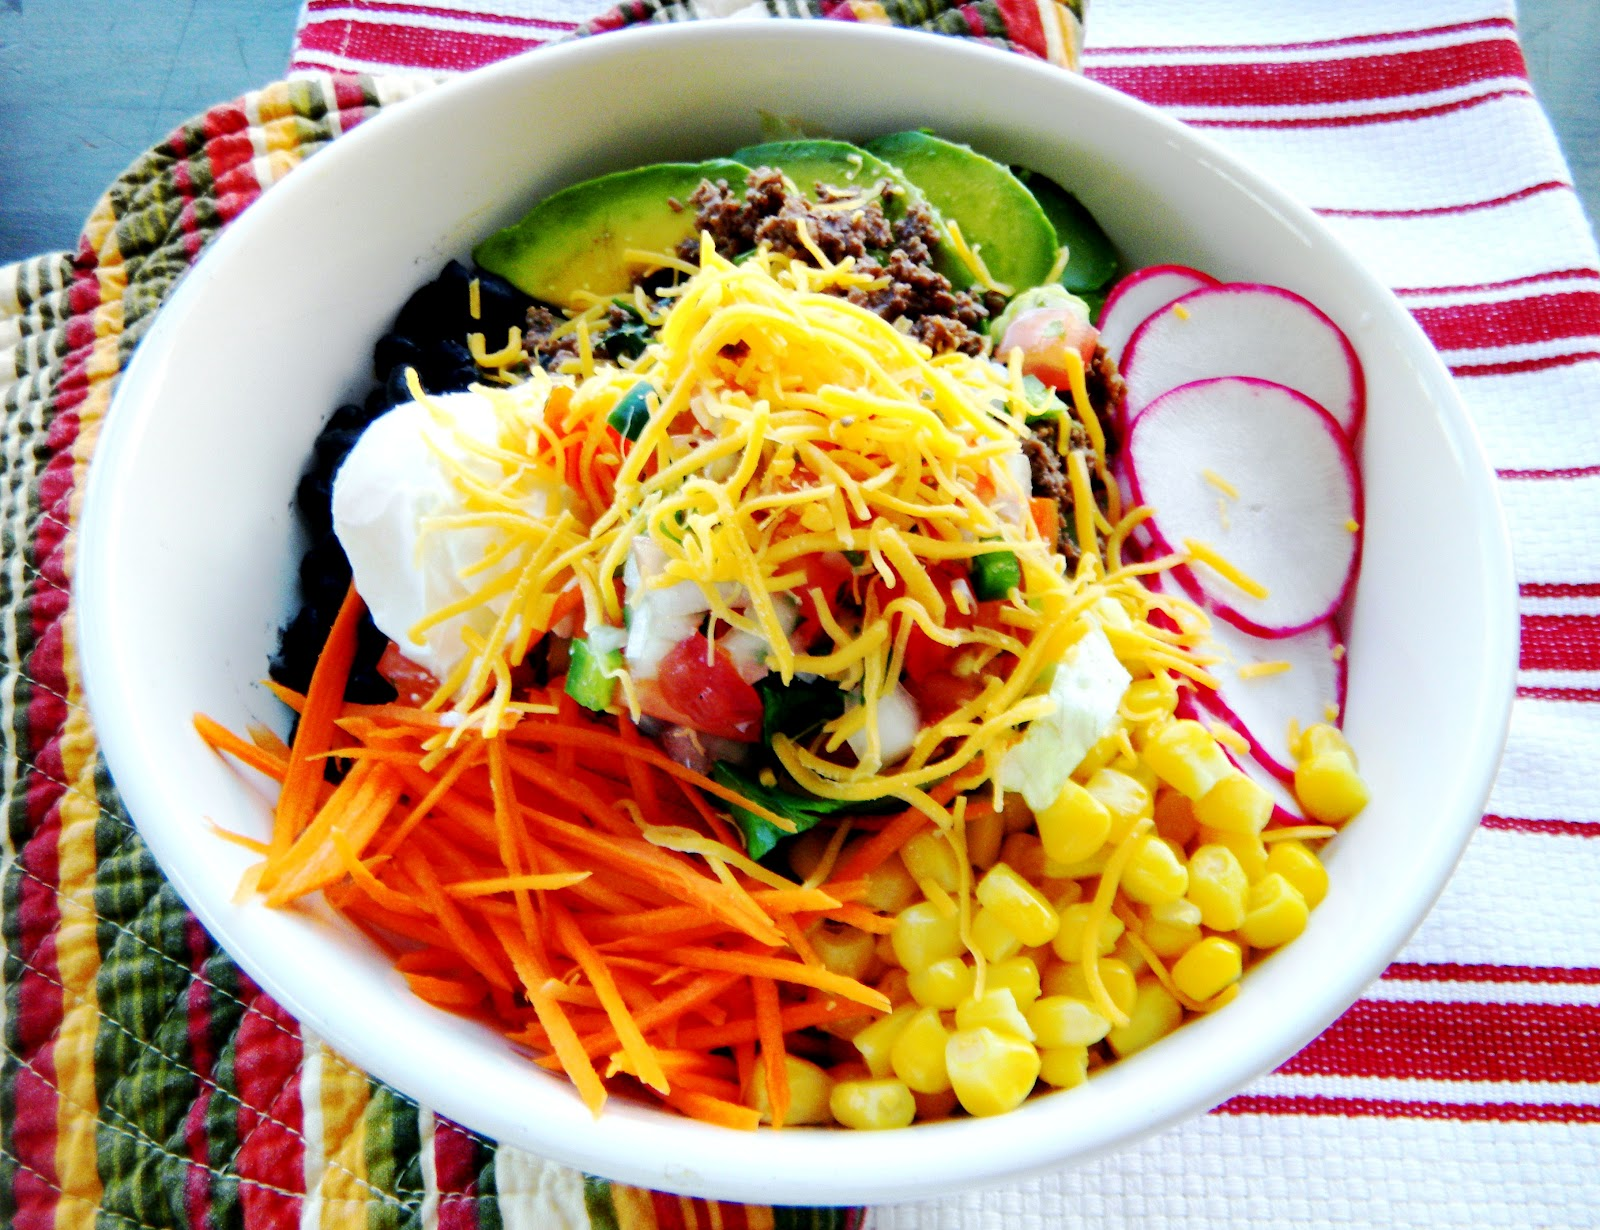 Taco salad bowls with Spanish rice - Cherry on my Sundae